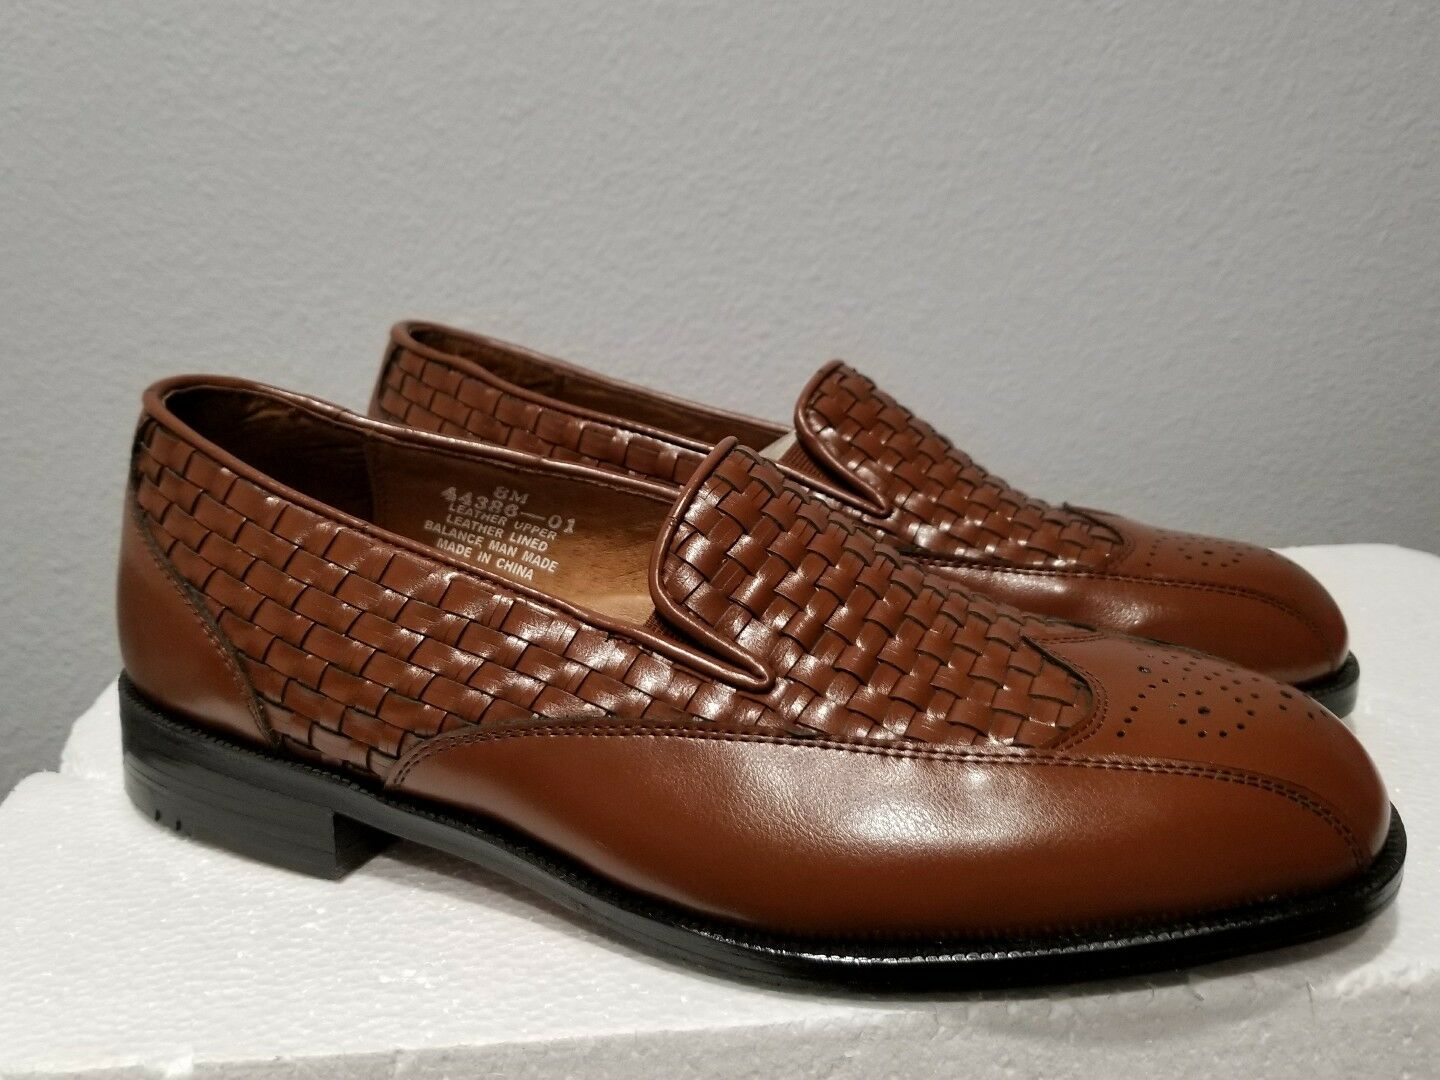 Botany 500 Men's Weave Loafers Leather Woven Dress shoes Size 8M 44386-01 New